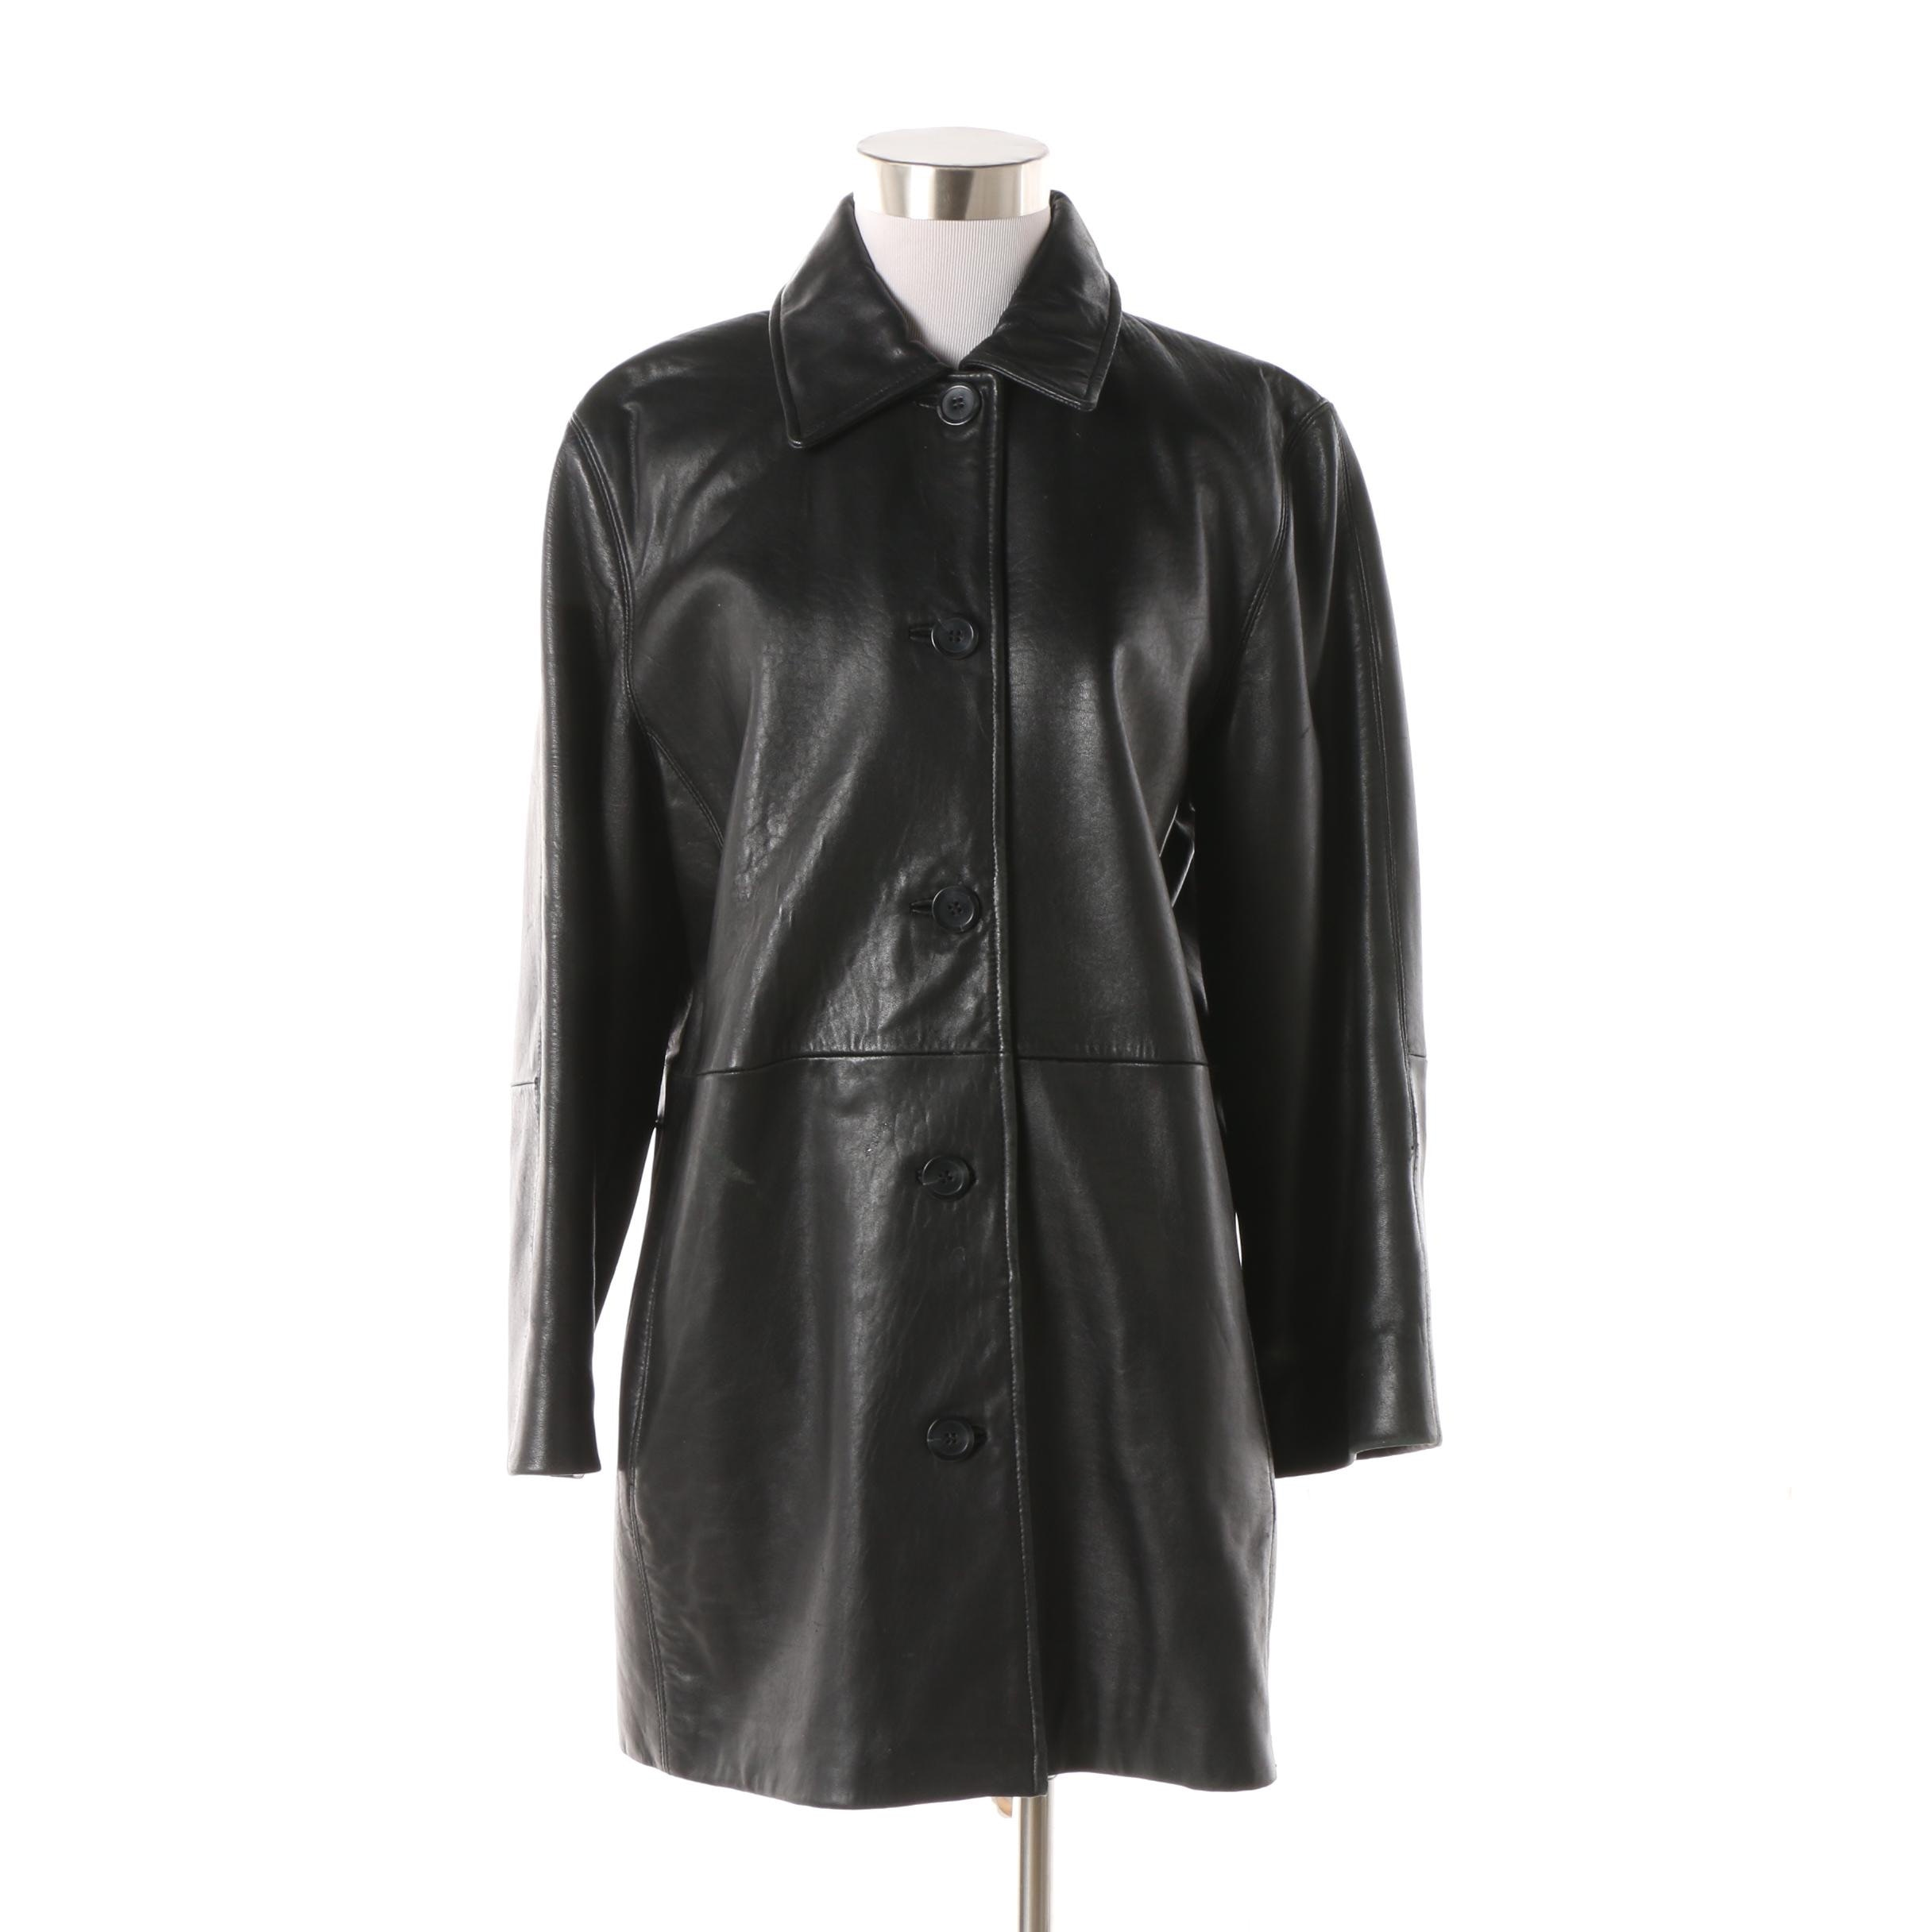 Women's JLC New York Outerwear Black Leather Jacket